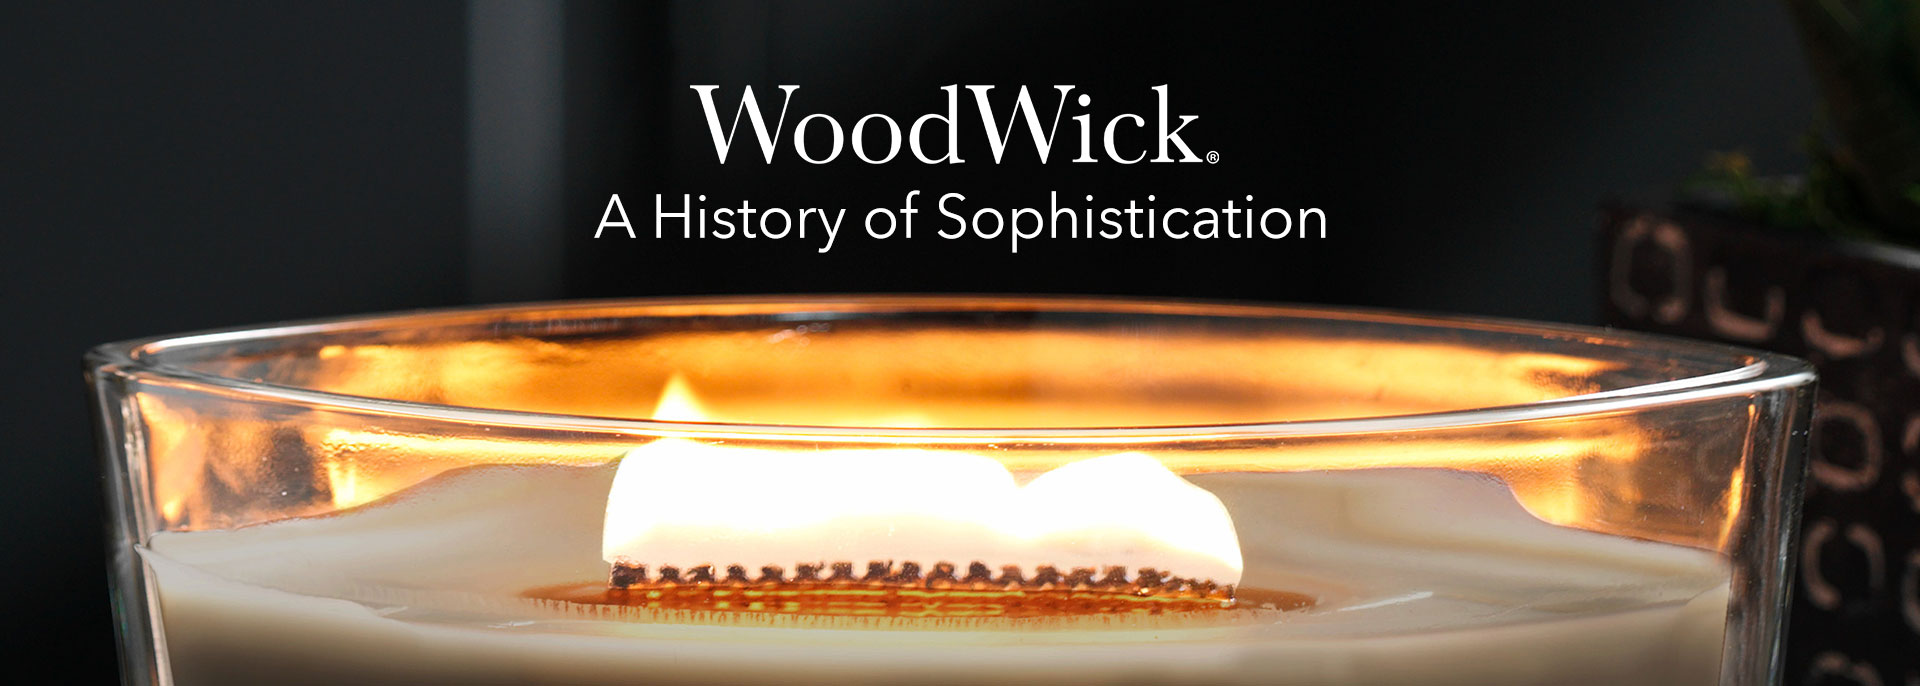 WoodWick® A History of Sophistication